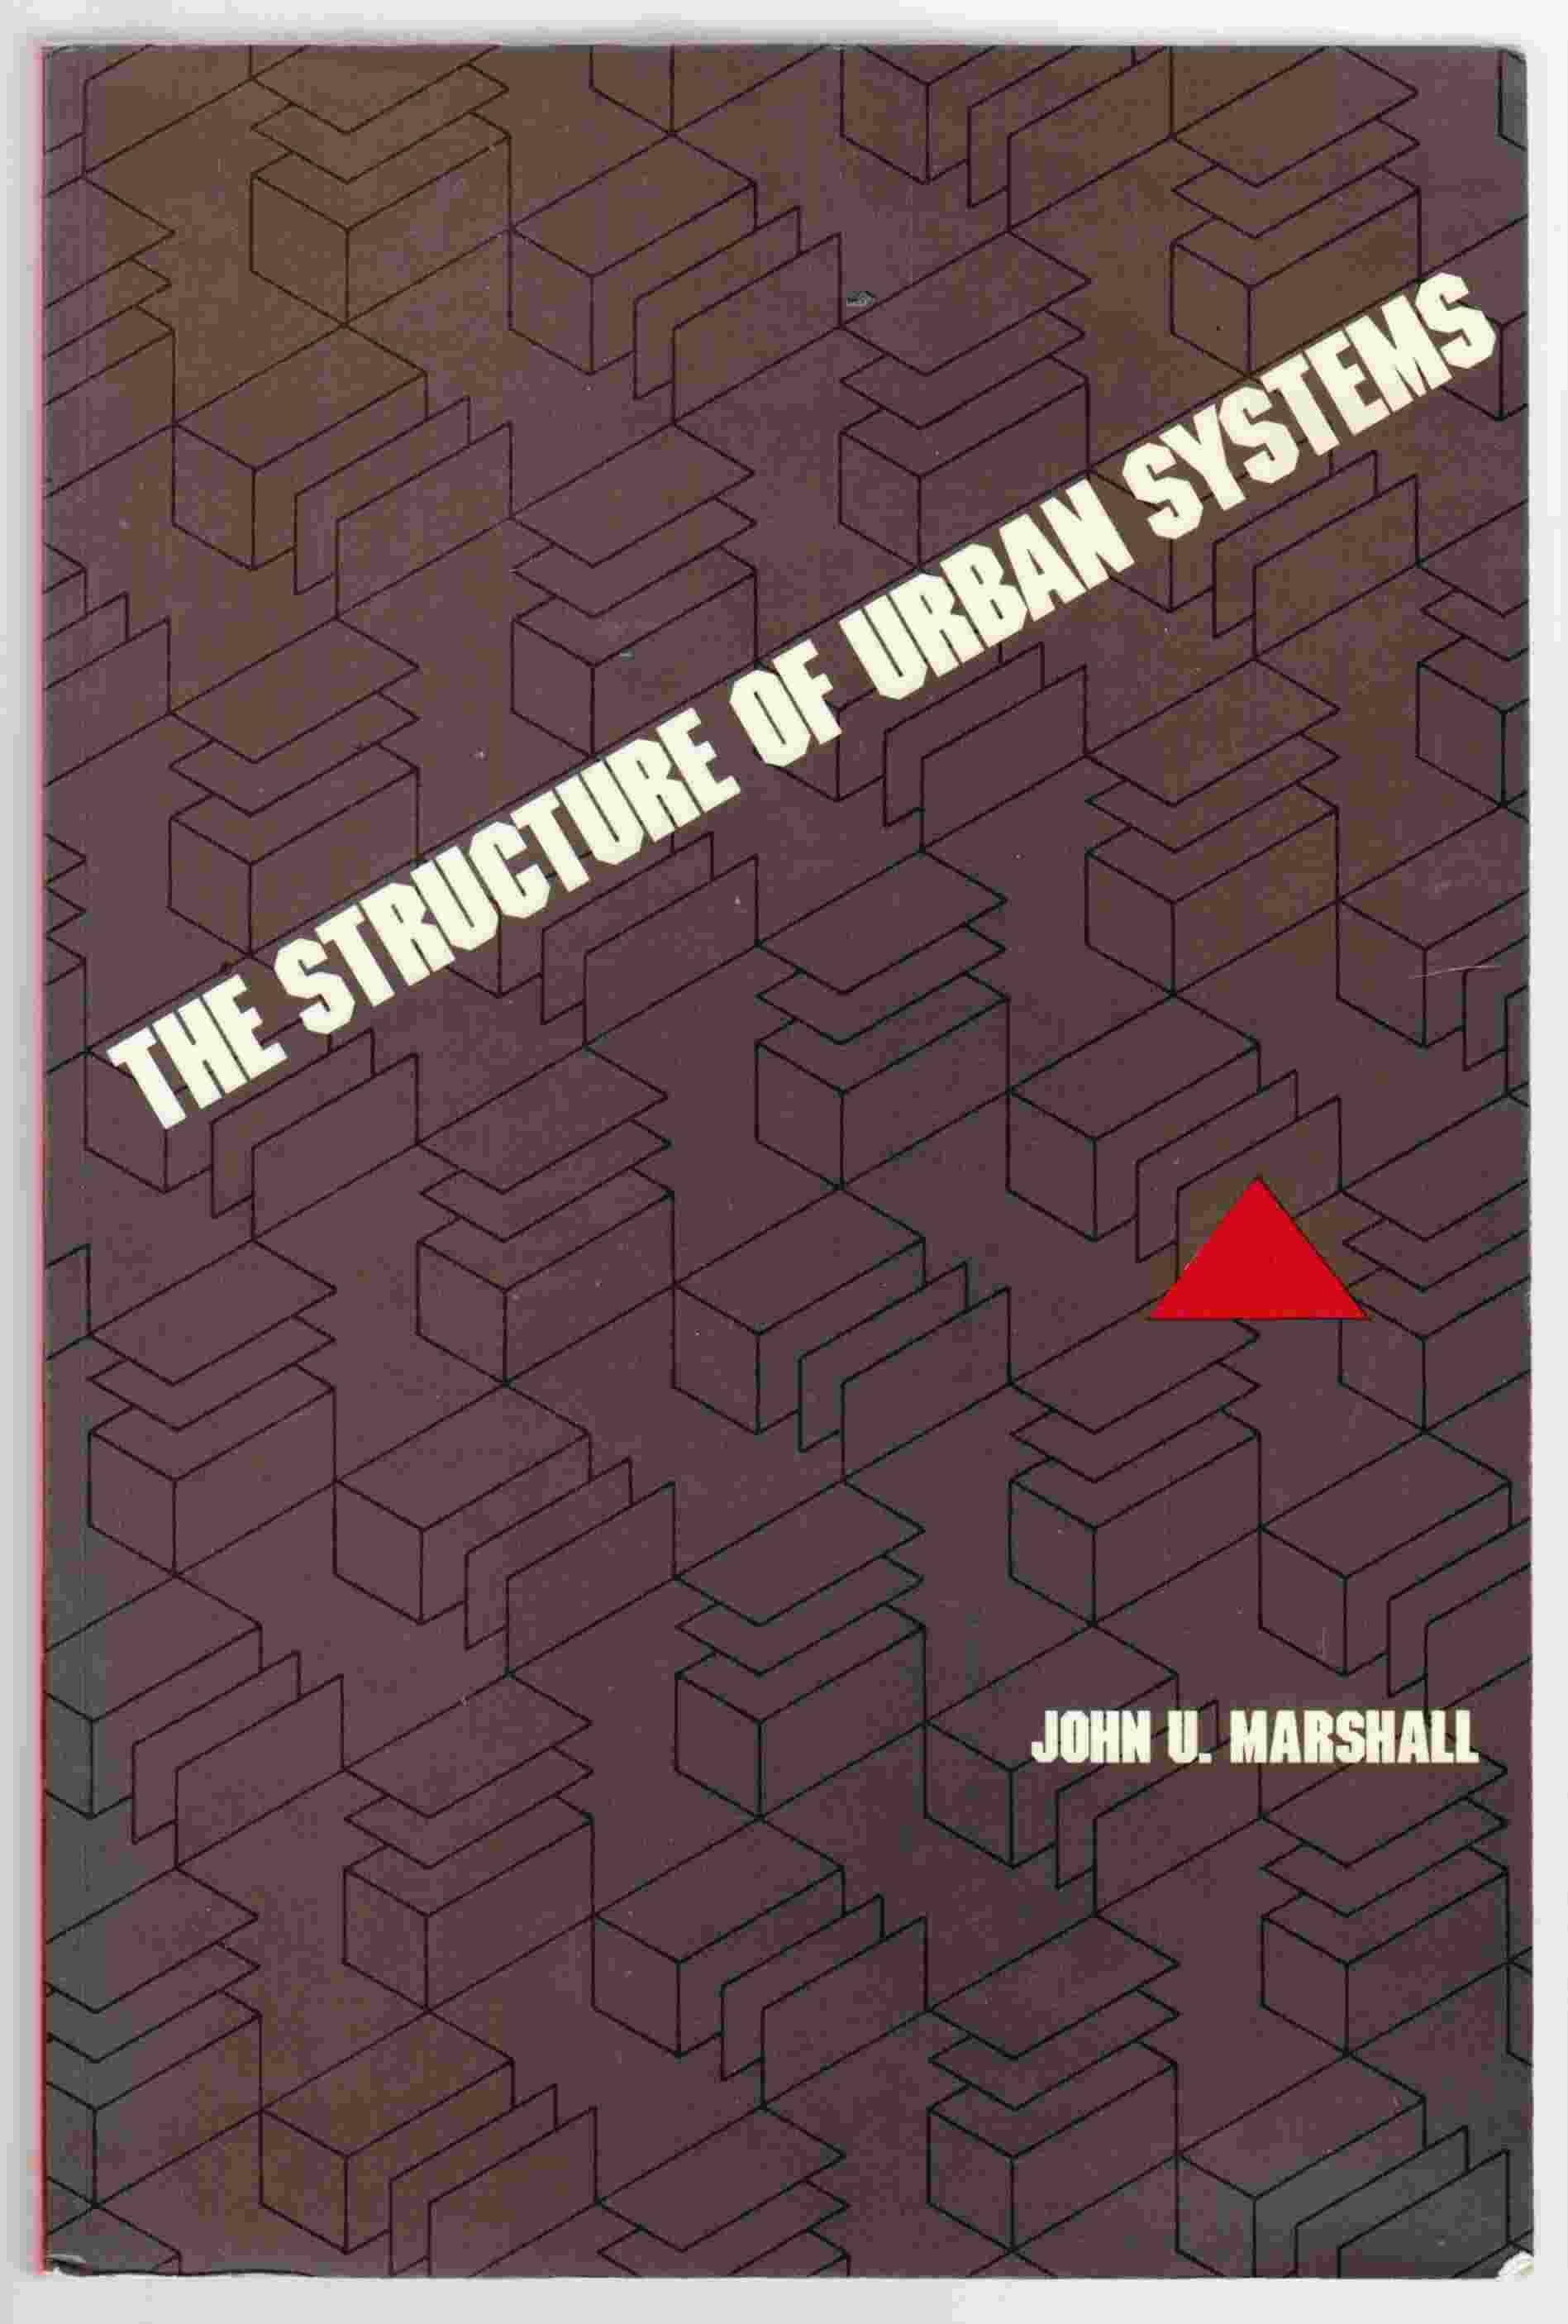 Image for The Structure of Urban Systems